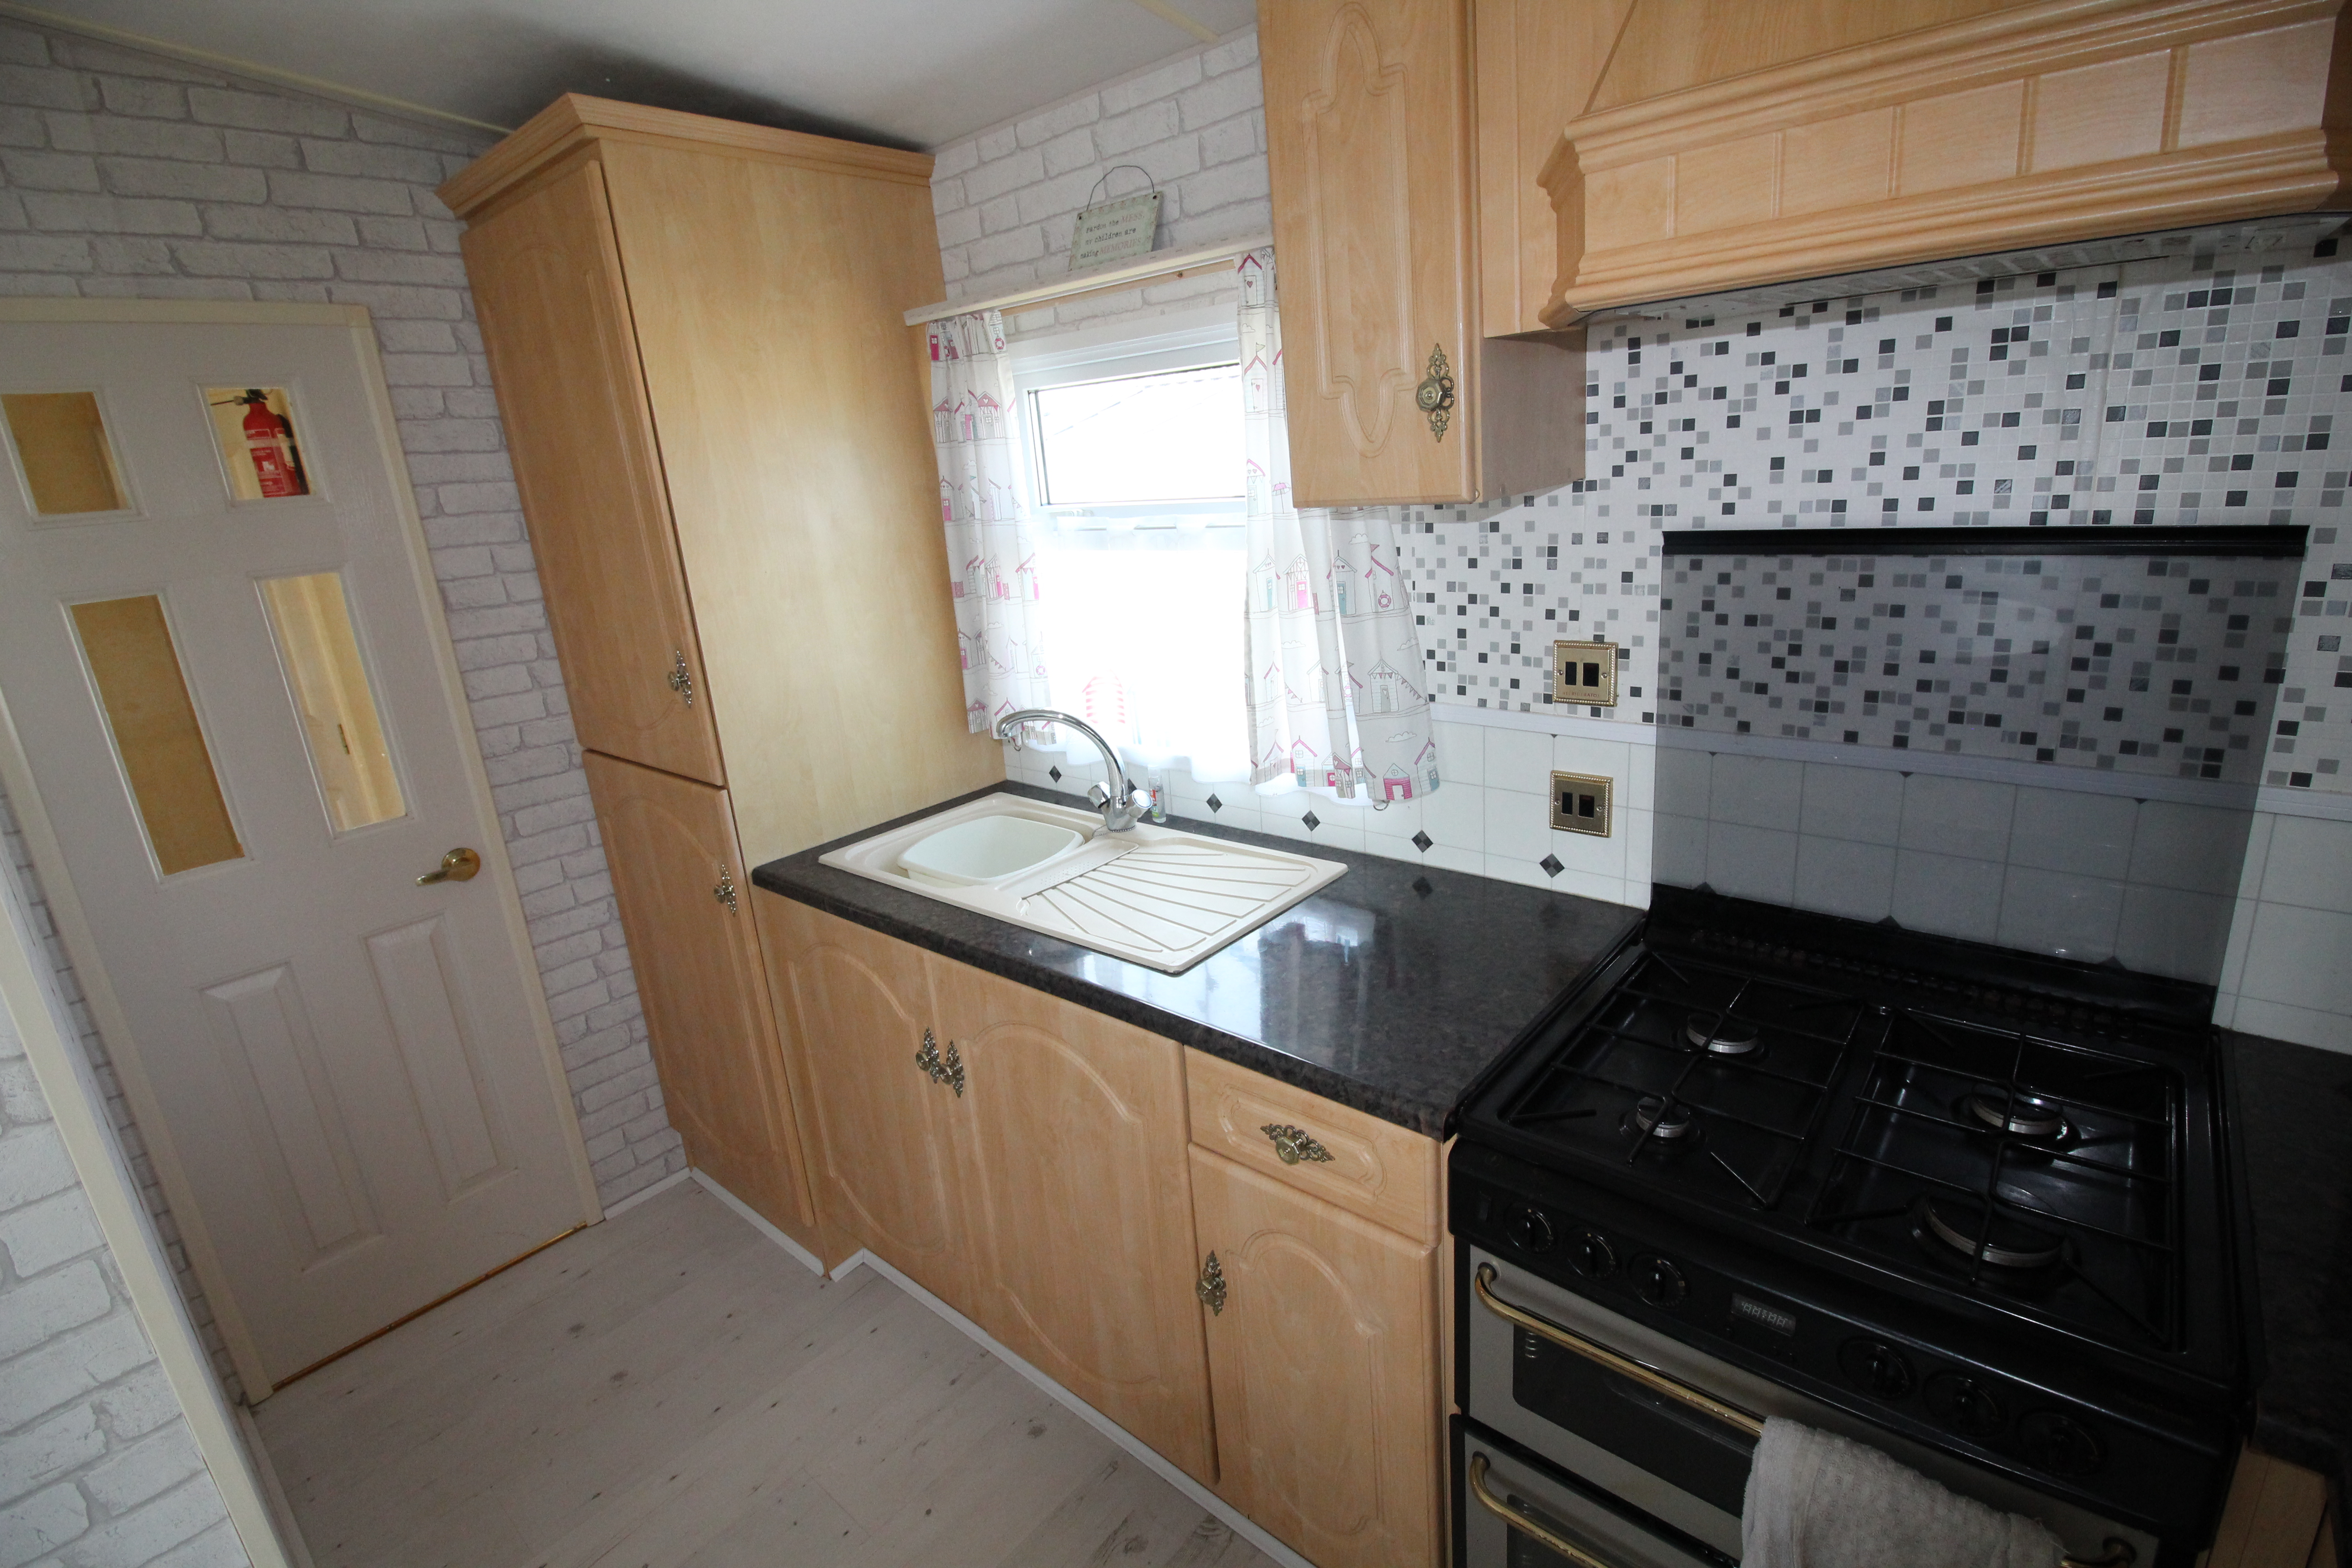 Apartment 2 Bed Caravan  Reighton Sands  Filey photo 19242544